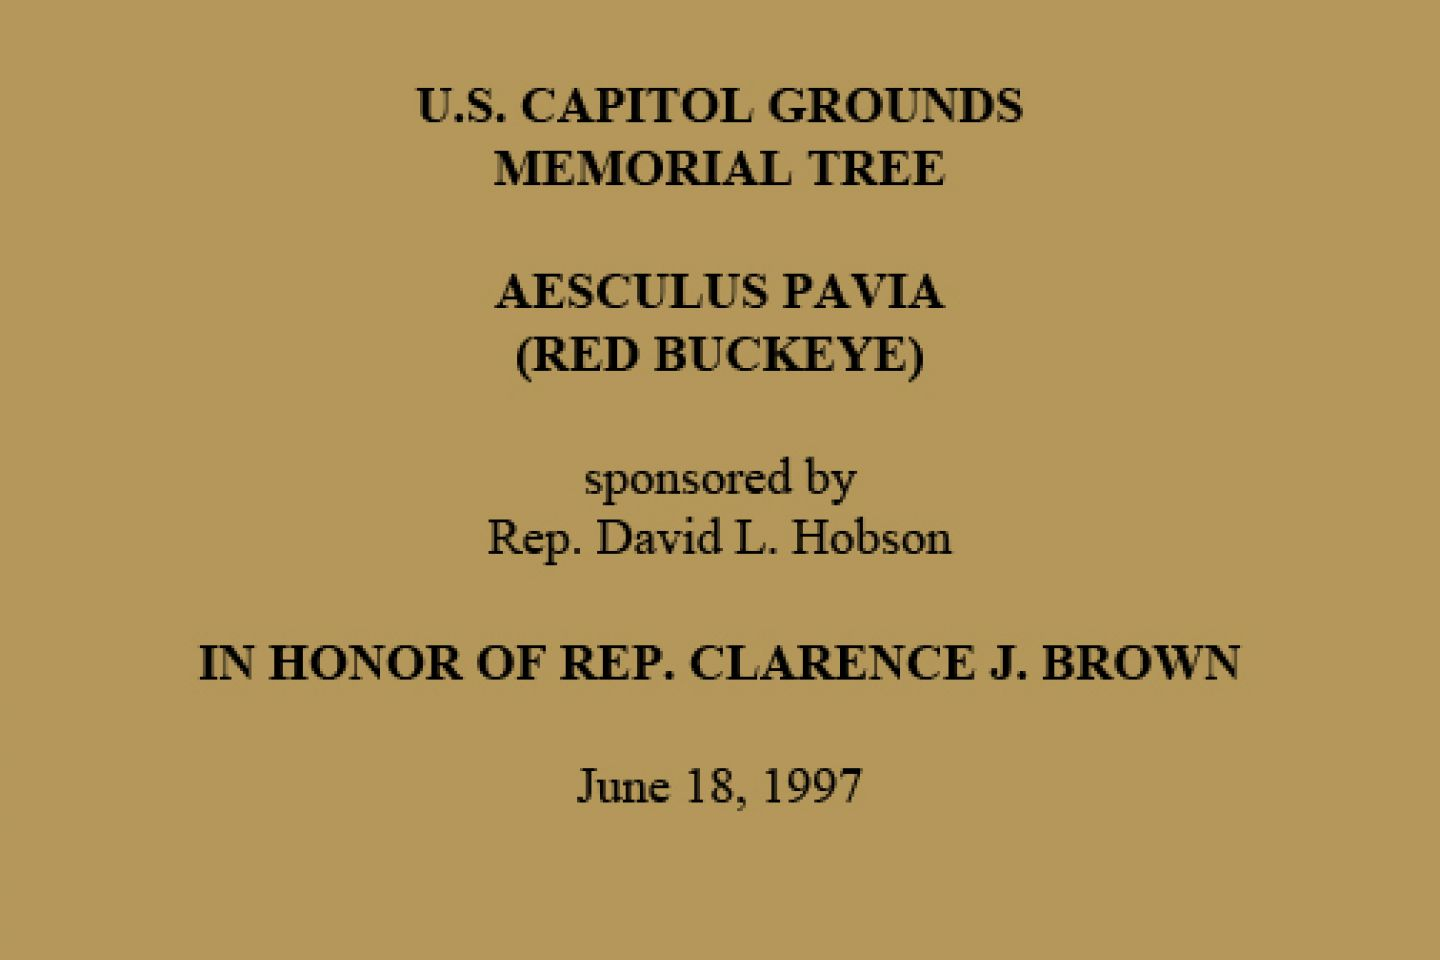 U.S. Capitol Grounds Memorial Tree  Aesculus pavia (Red Buckeye)  sponsored by Rep. David L. Hobson  In Honor of Rep. Clarence J. Brown  June 18, 1997